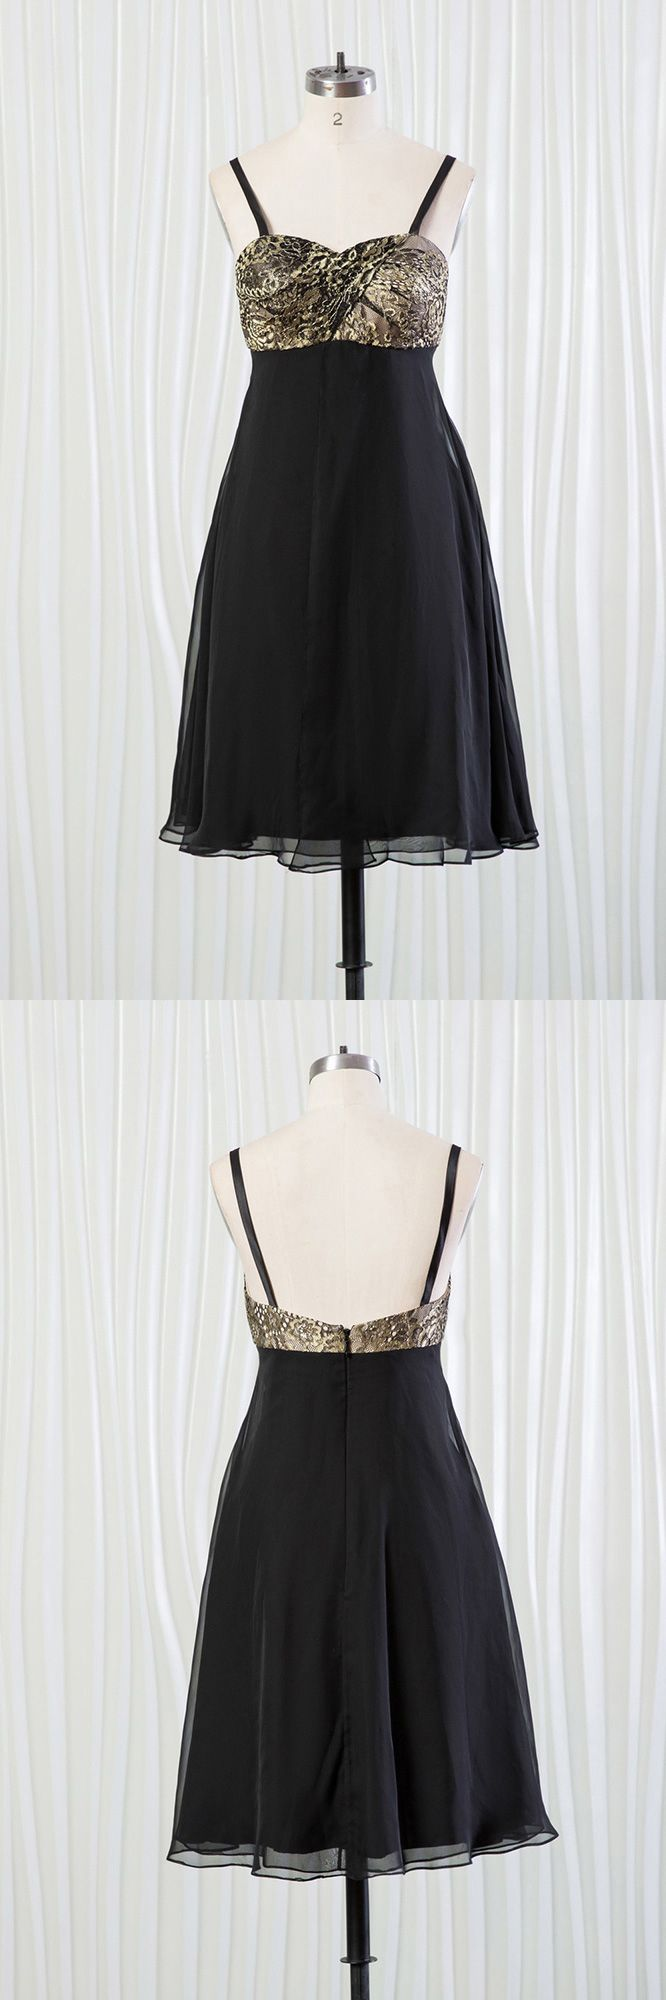 Short black bridesmaid dress with shiny leopard lace top fn